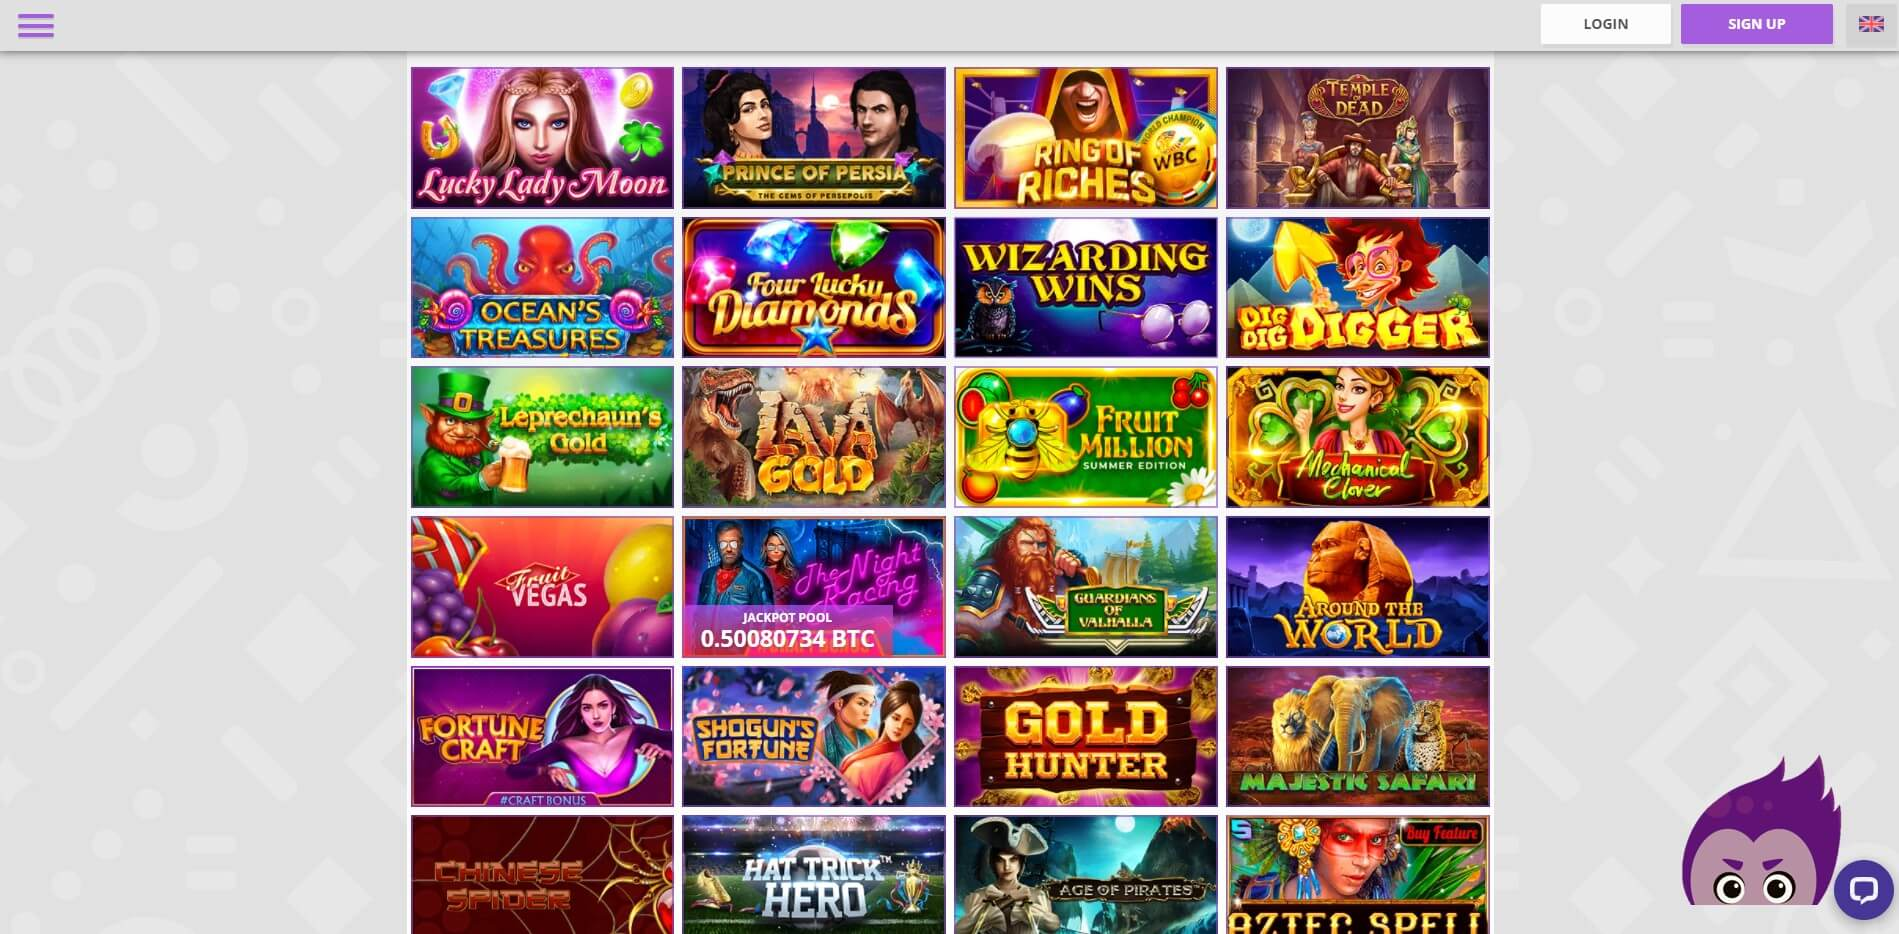 Games at CryptoWild CAsino